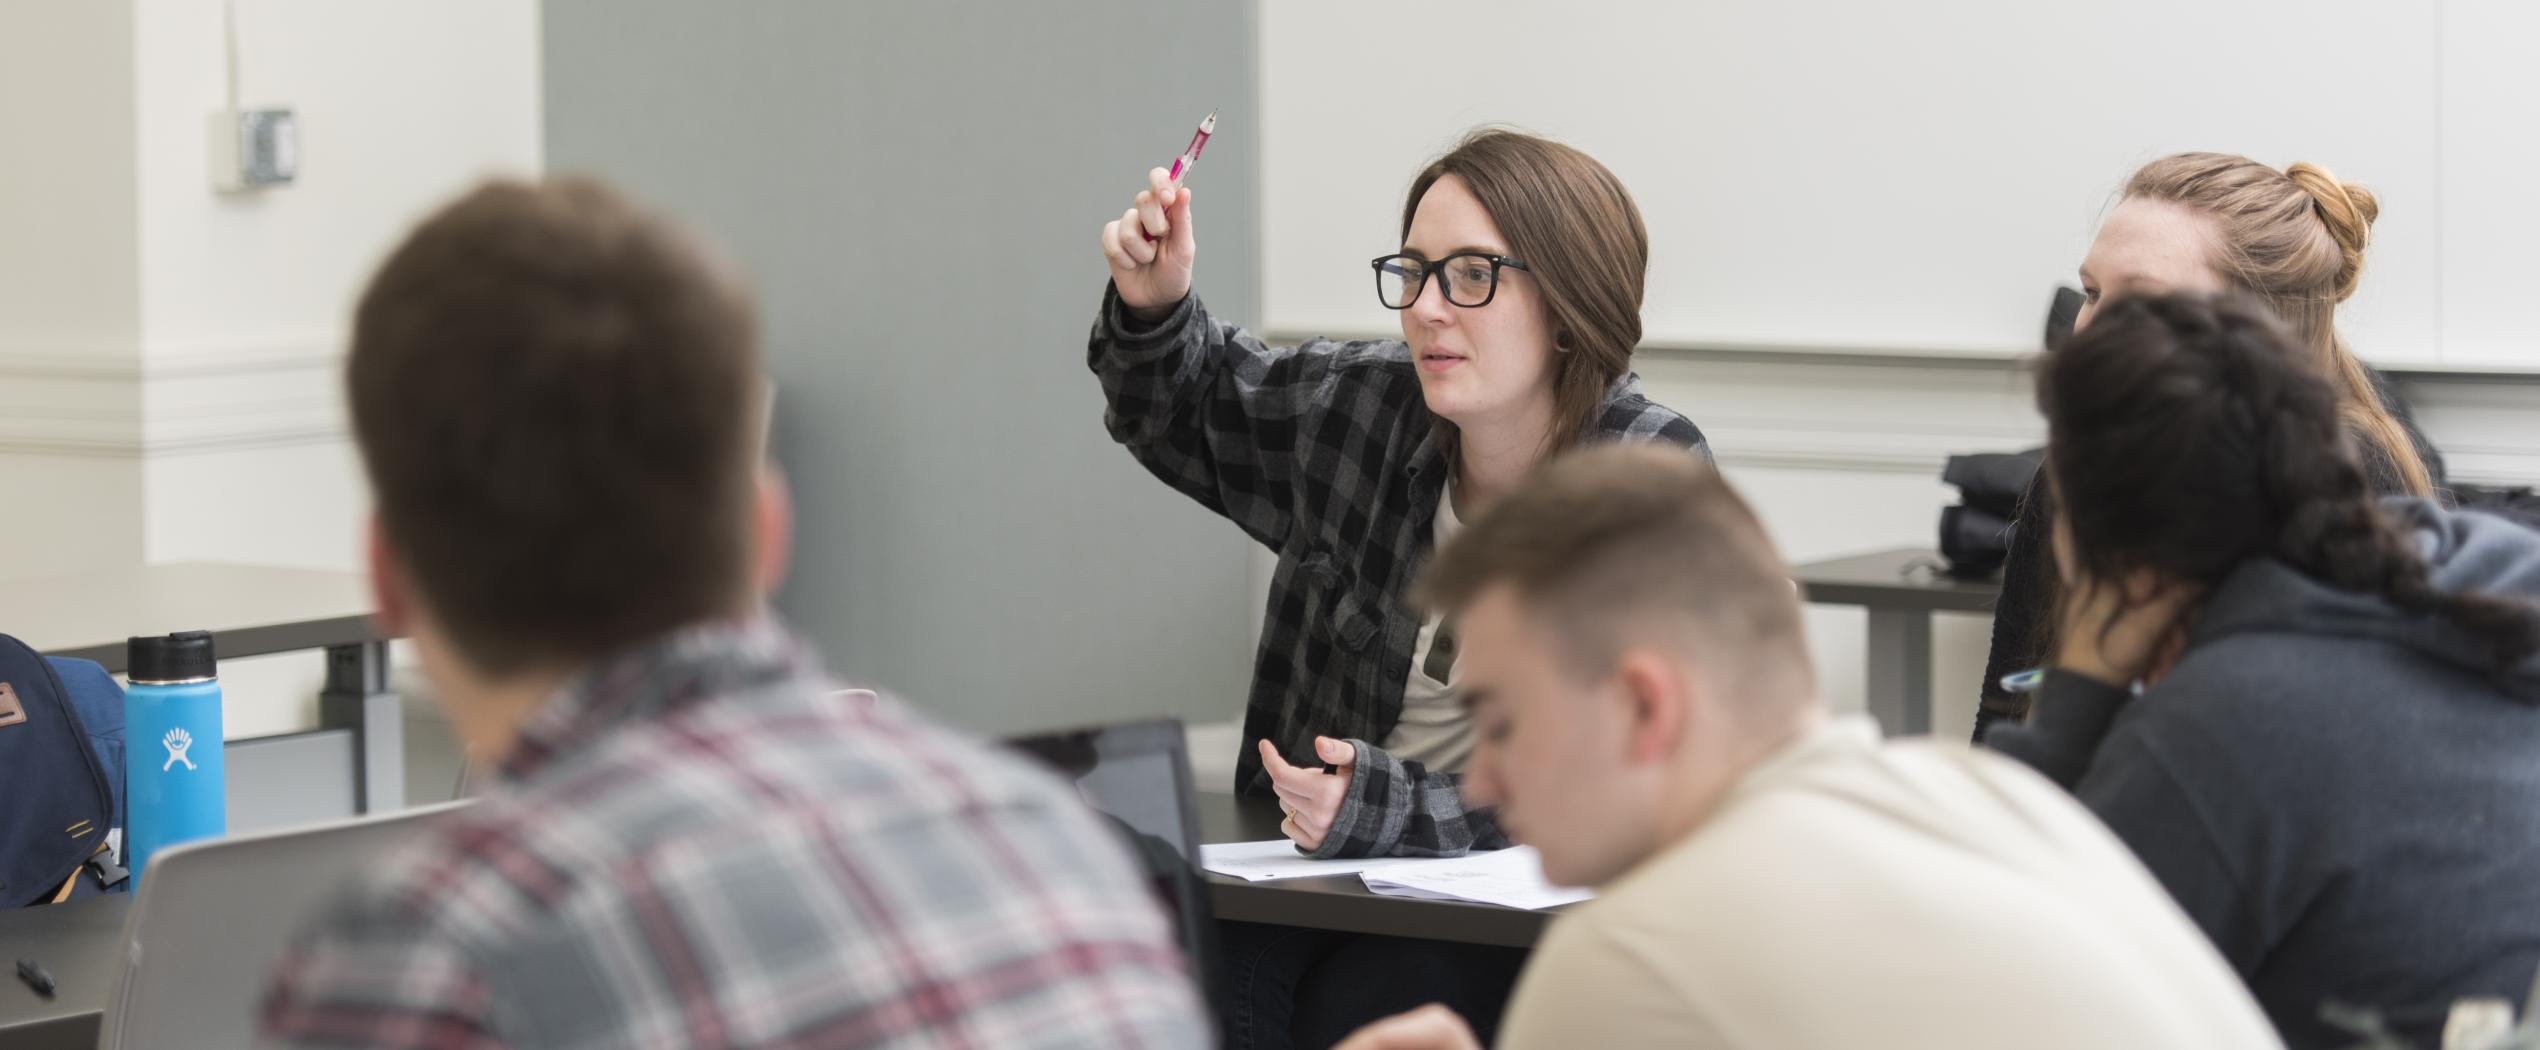 female student raising her hand in class